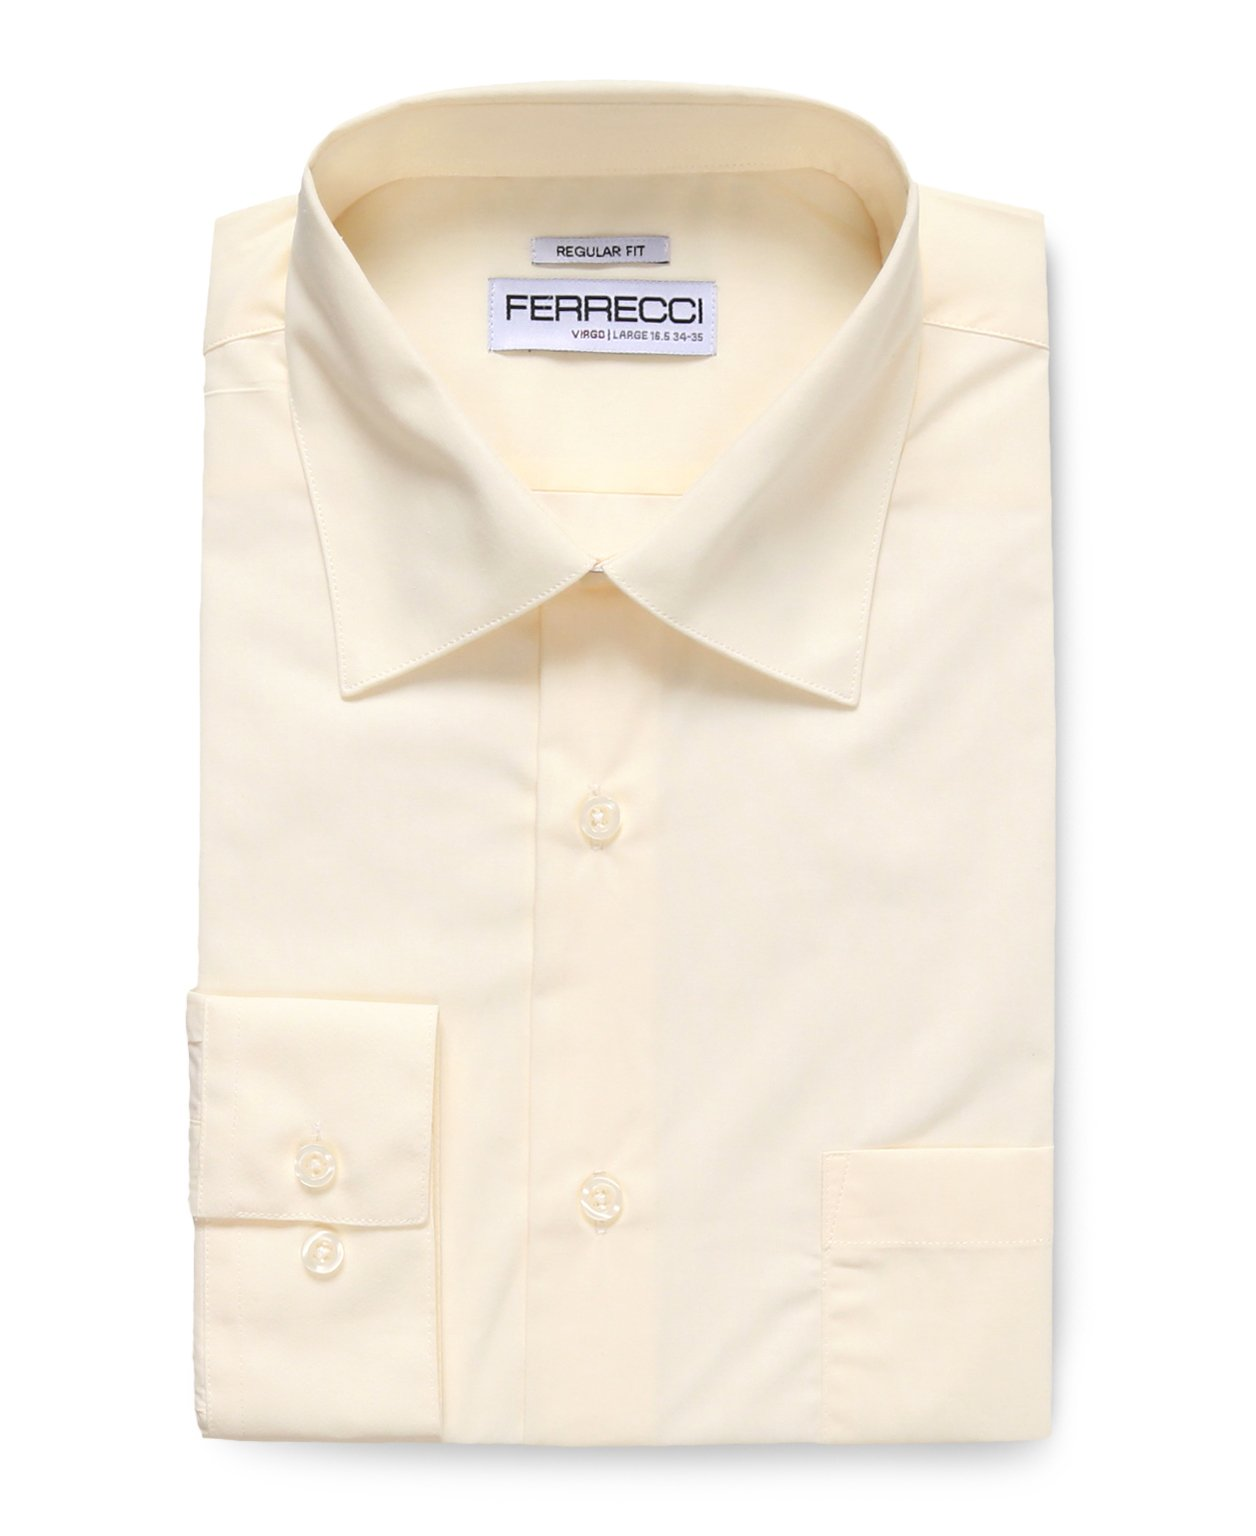 Virgo Off White Regular Fit Dress Shirt - Giorgio's Menswear